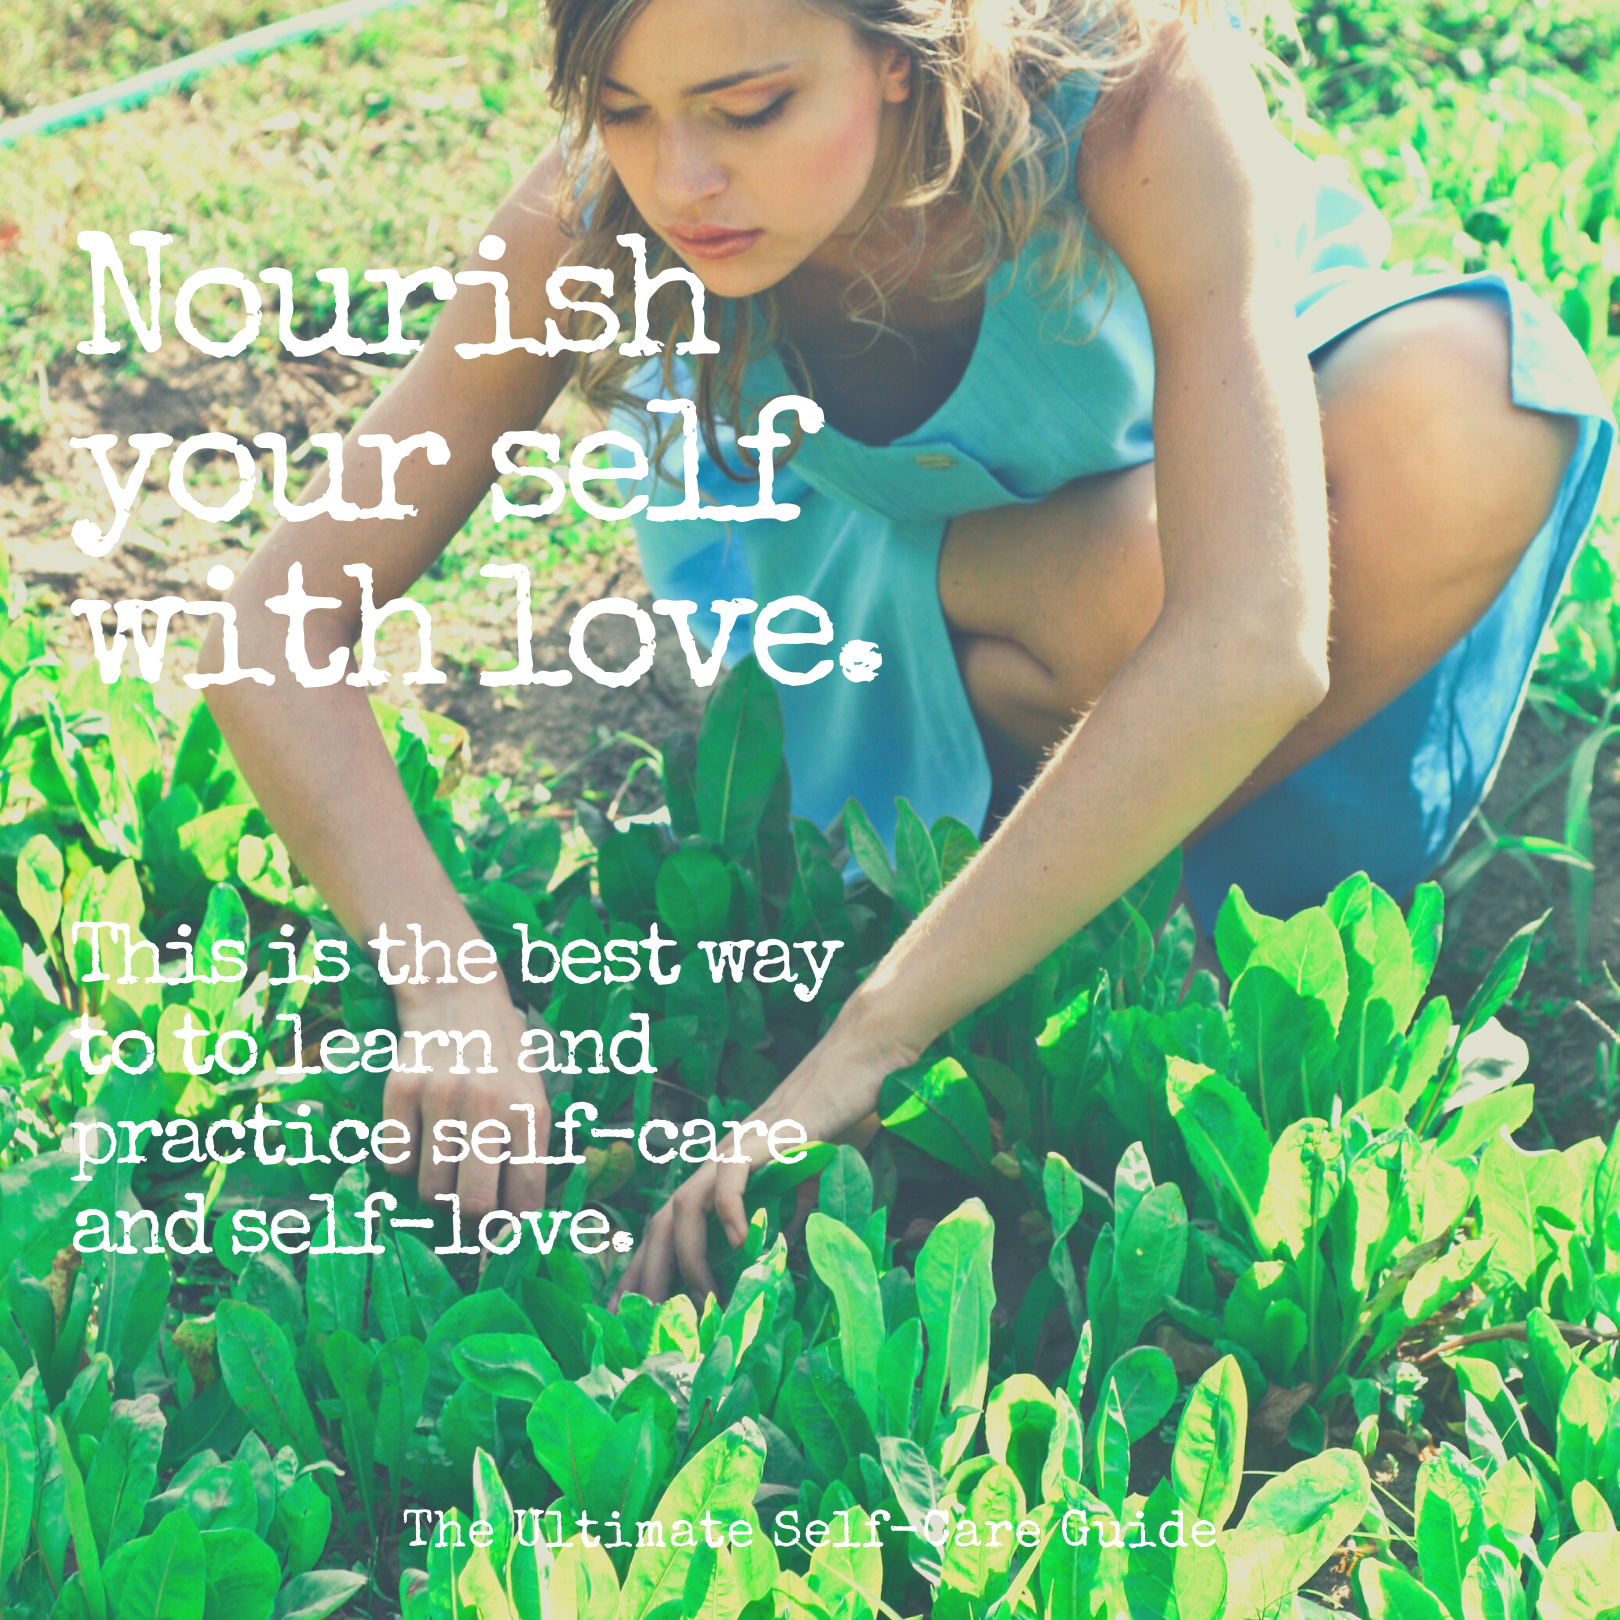 Nourish your self with love. This is the best way to to learn and practice self-care and self-love. Dorothy Ratusny for Thrive Global (image of woman in garden)